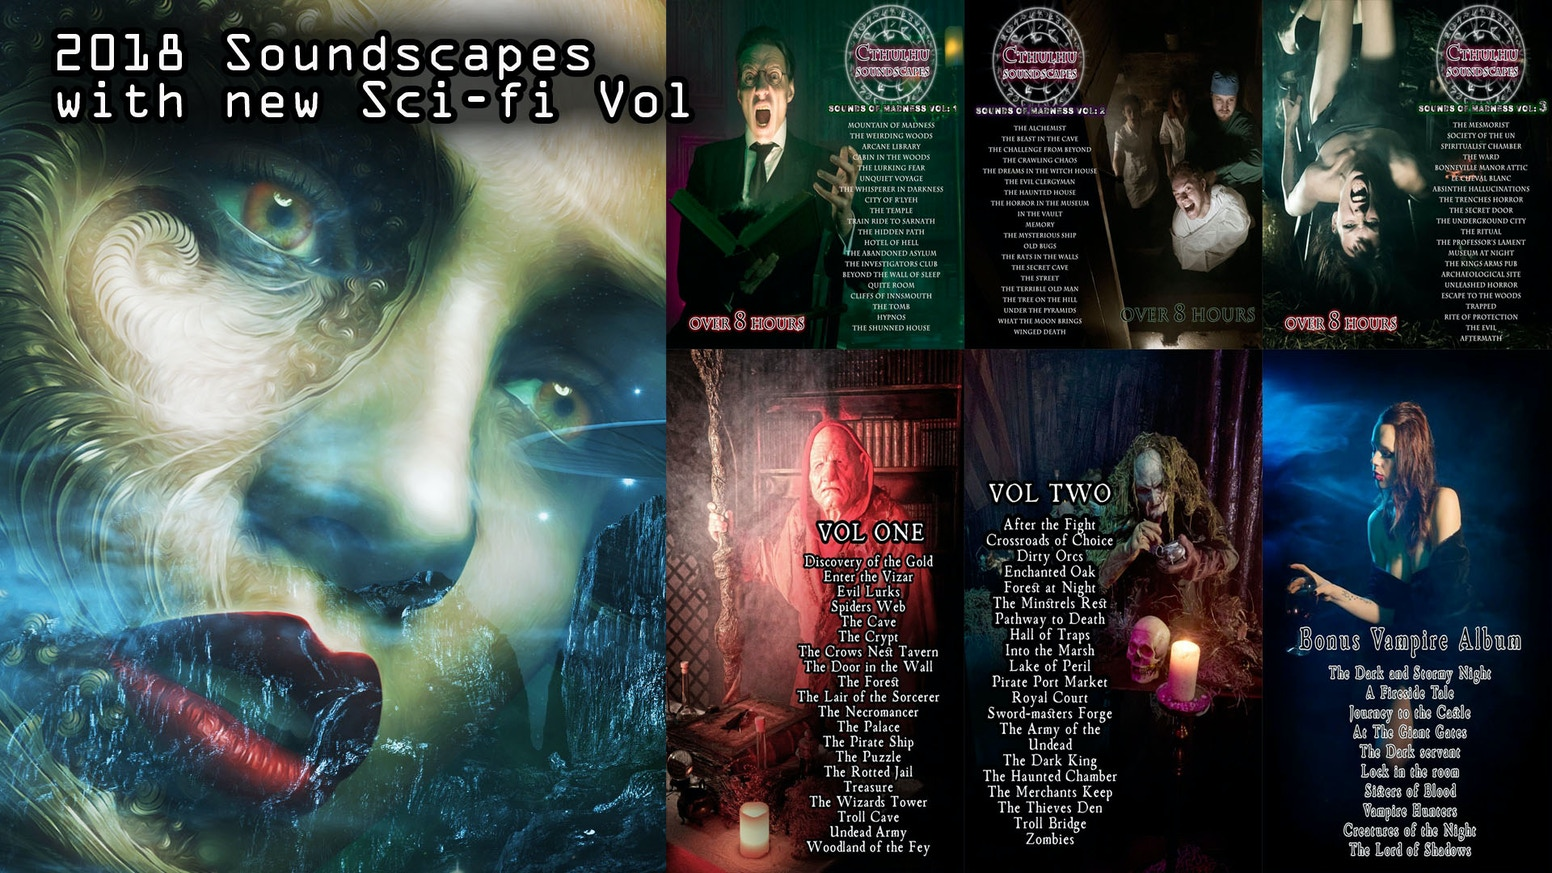 2018 Sci-Fi, Cthulhu Horror & Fantasy Soundscapes by Oliver